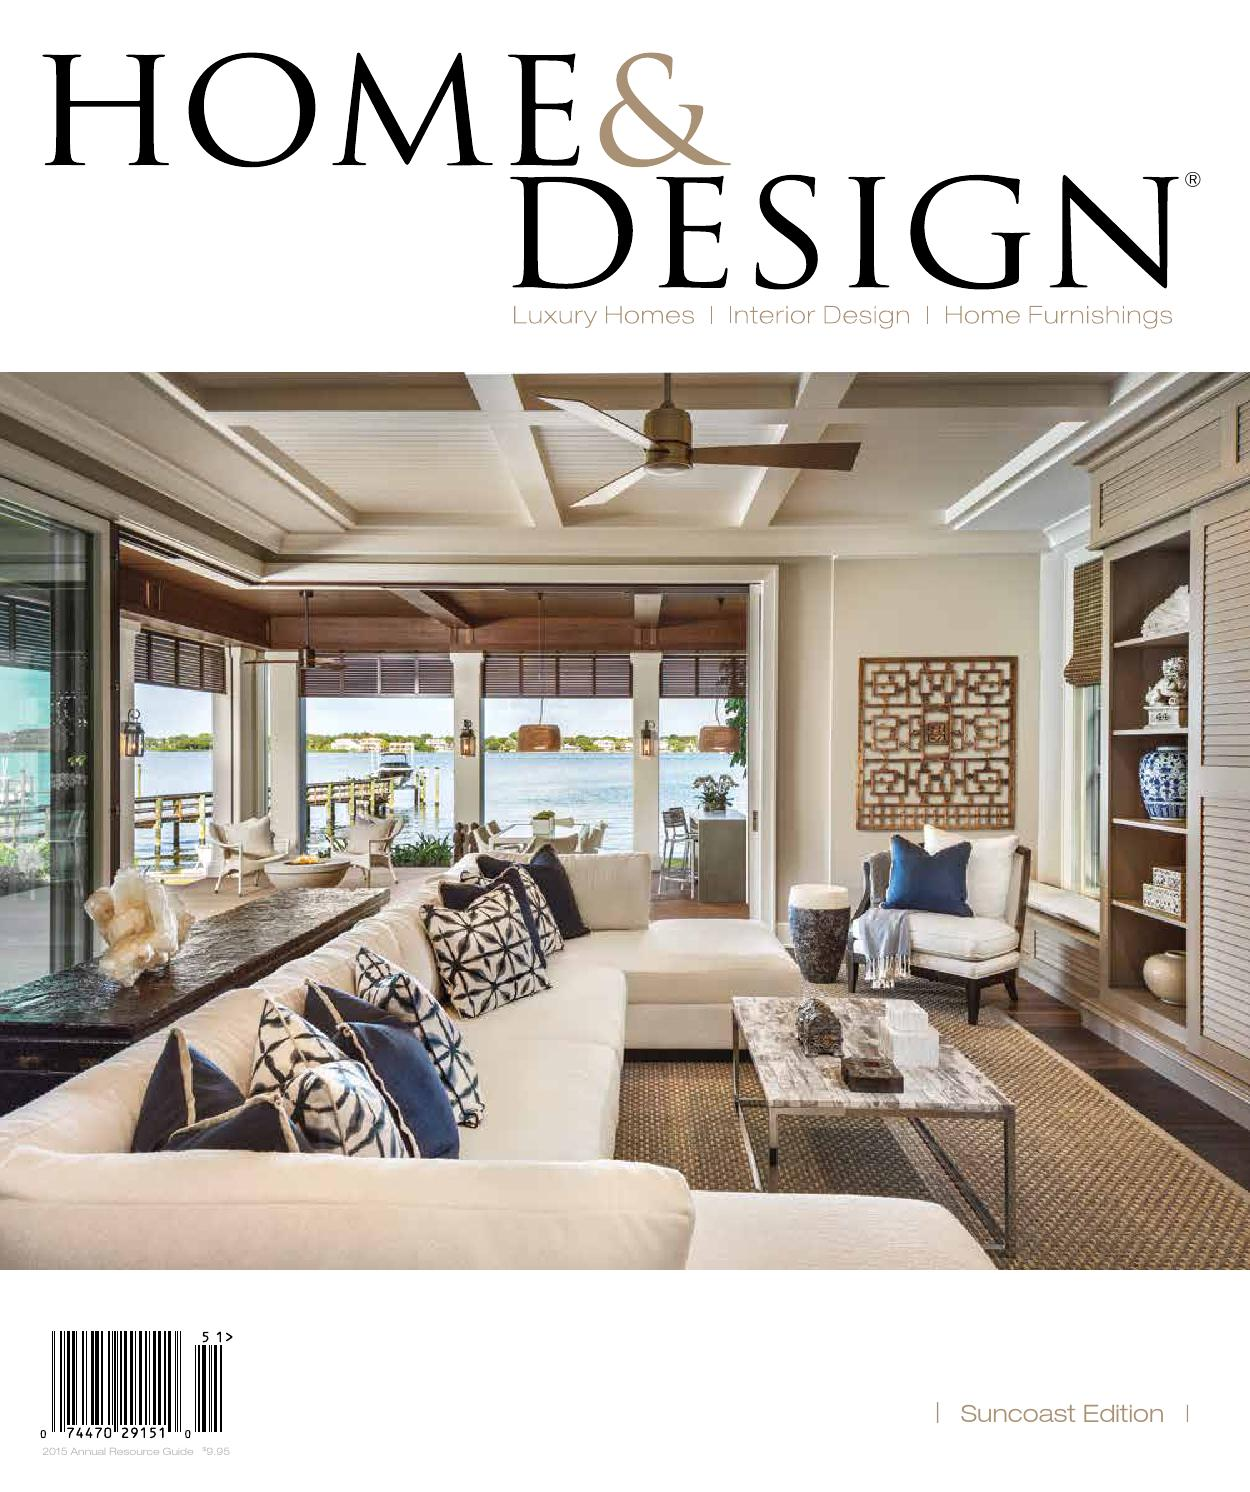 Home   Design Magazine   Annual Resource Guide 2015   Suncoast Florida  Edition by Anthony Spano   issuu. Home   Design Magazine   Annual Resource Guide 2015   Suncoast